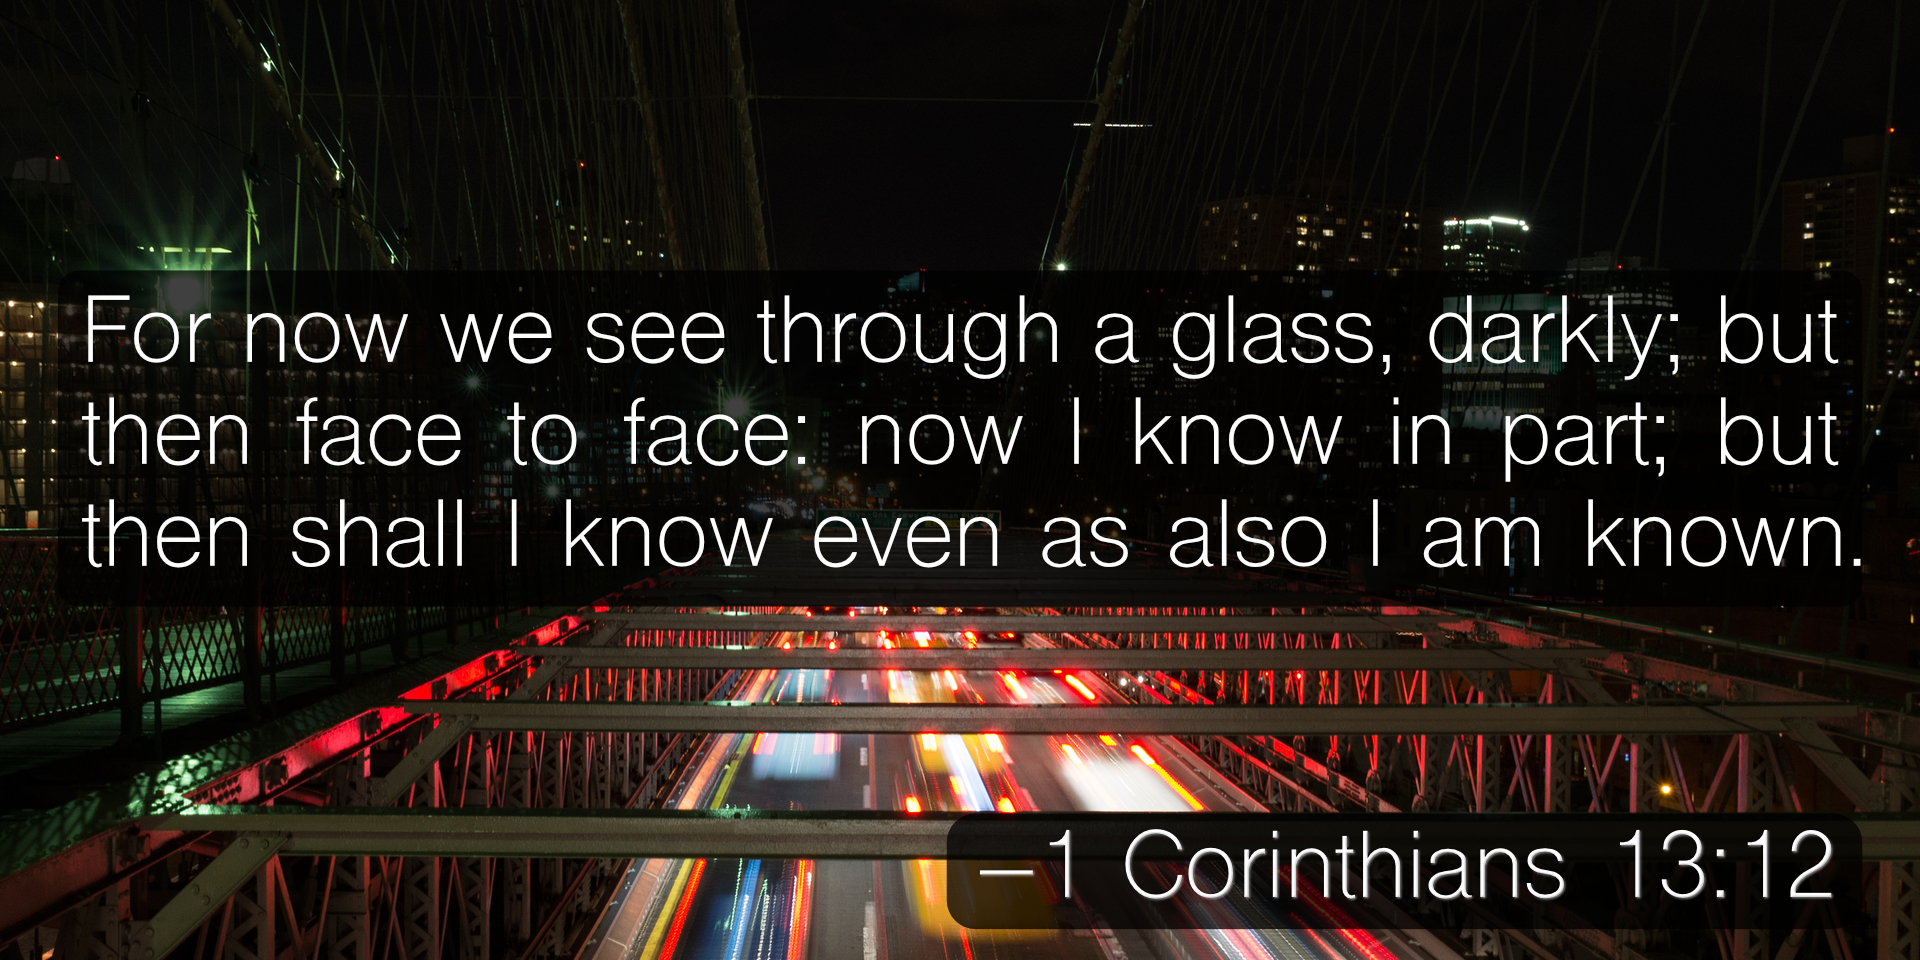 For now we see through a glass, darkly; but then face to face: now I know in part; but then shall I know even as also I am known. –1 Corinthians 13:12